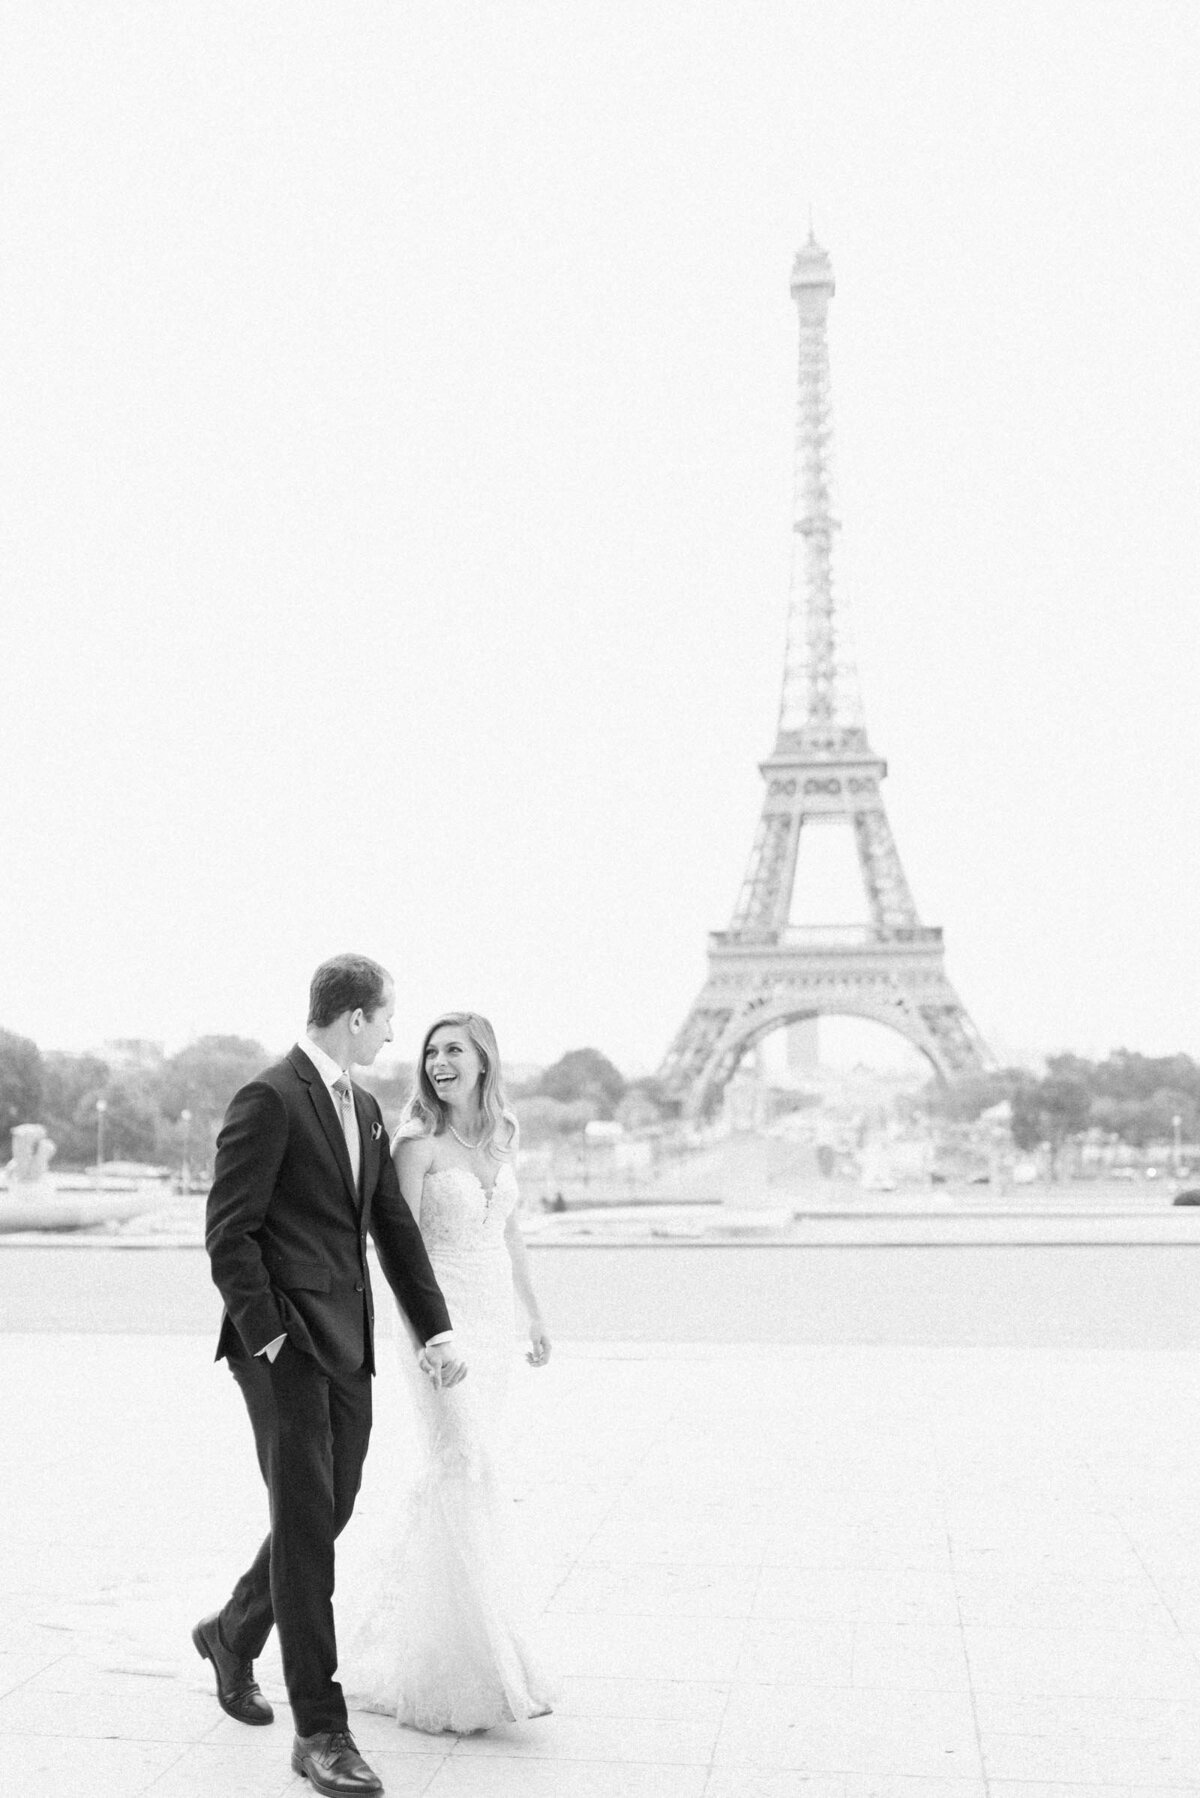 marcelaploskerphotography-paris_wedding-24